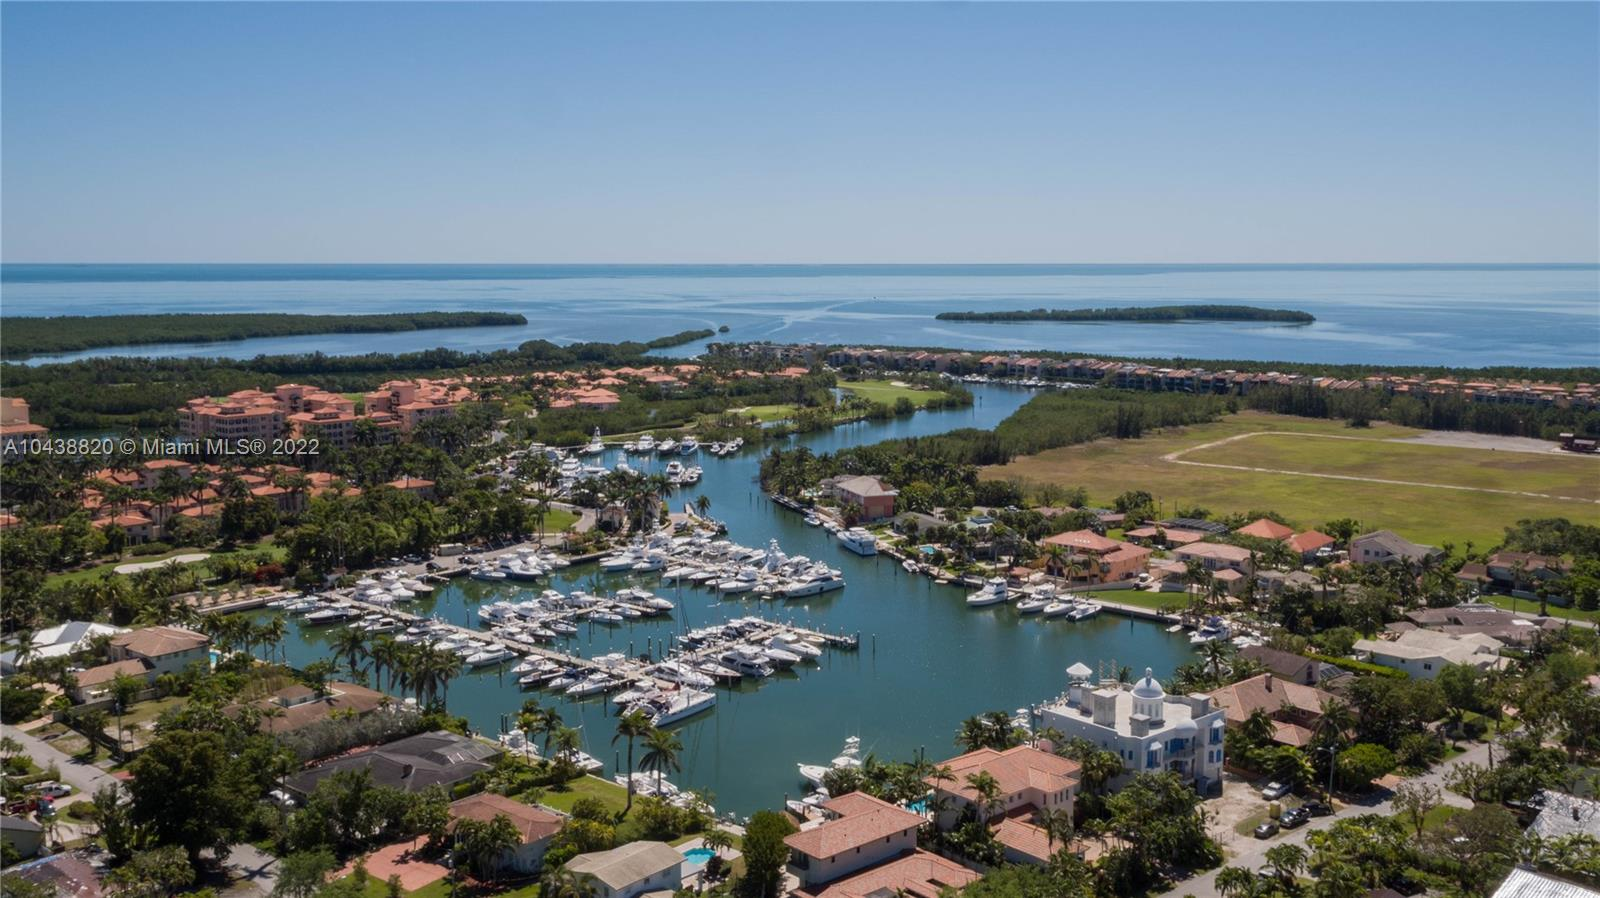 Just minutes to the bay from a private dock - rarely available gorgeous waterfront home with stunning Wide Views of the Deering Bay Marina and deep water lagoon - 100' sea wall accommodates five 50' boats - no bridges to bay or ocean. Located in prestigious Coral Gables gated community of Kings Bay Estates. Features striking interior spaces, several balconies, formal dining, gourmet kitchen with cooking island, soaring ceilings, over-sized rooms, sweeping staircase, first level is a 3300 SF garage for 8 plus exotic or otherwise personal vehicles, elevator from garage to upper level interiors, and a 24/7 recorded nine camera security system . Incredible for ardent car and boat enthusiast.